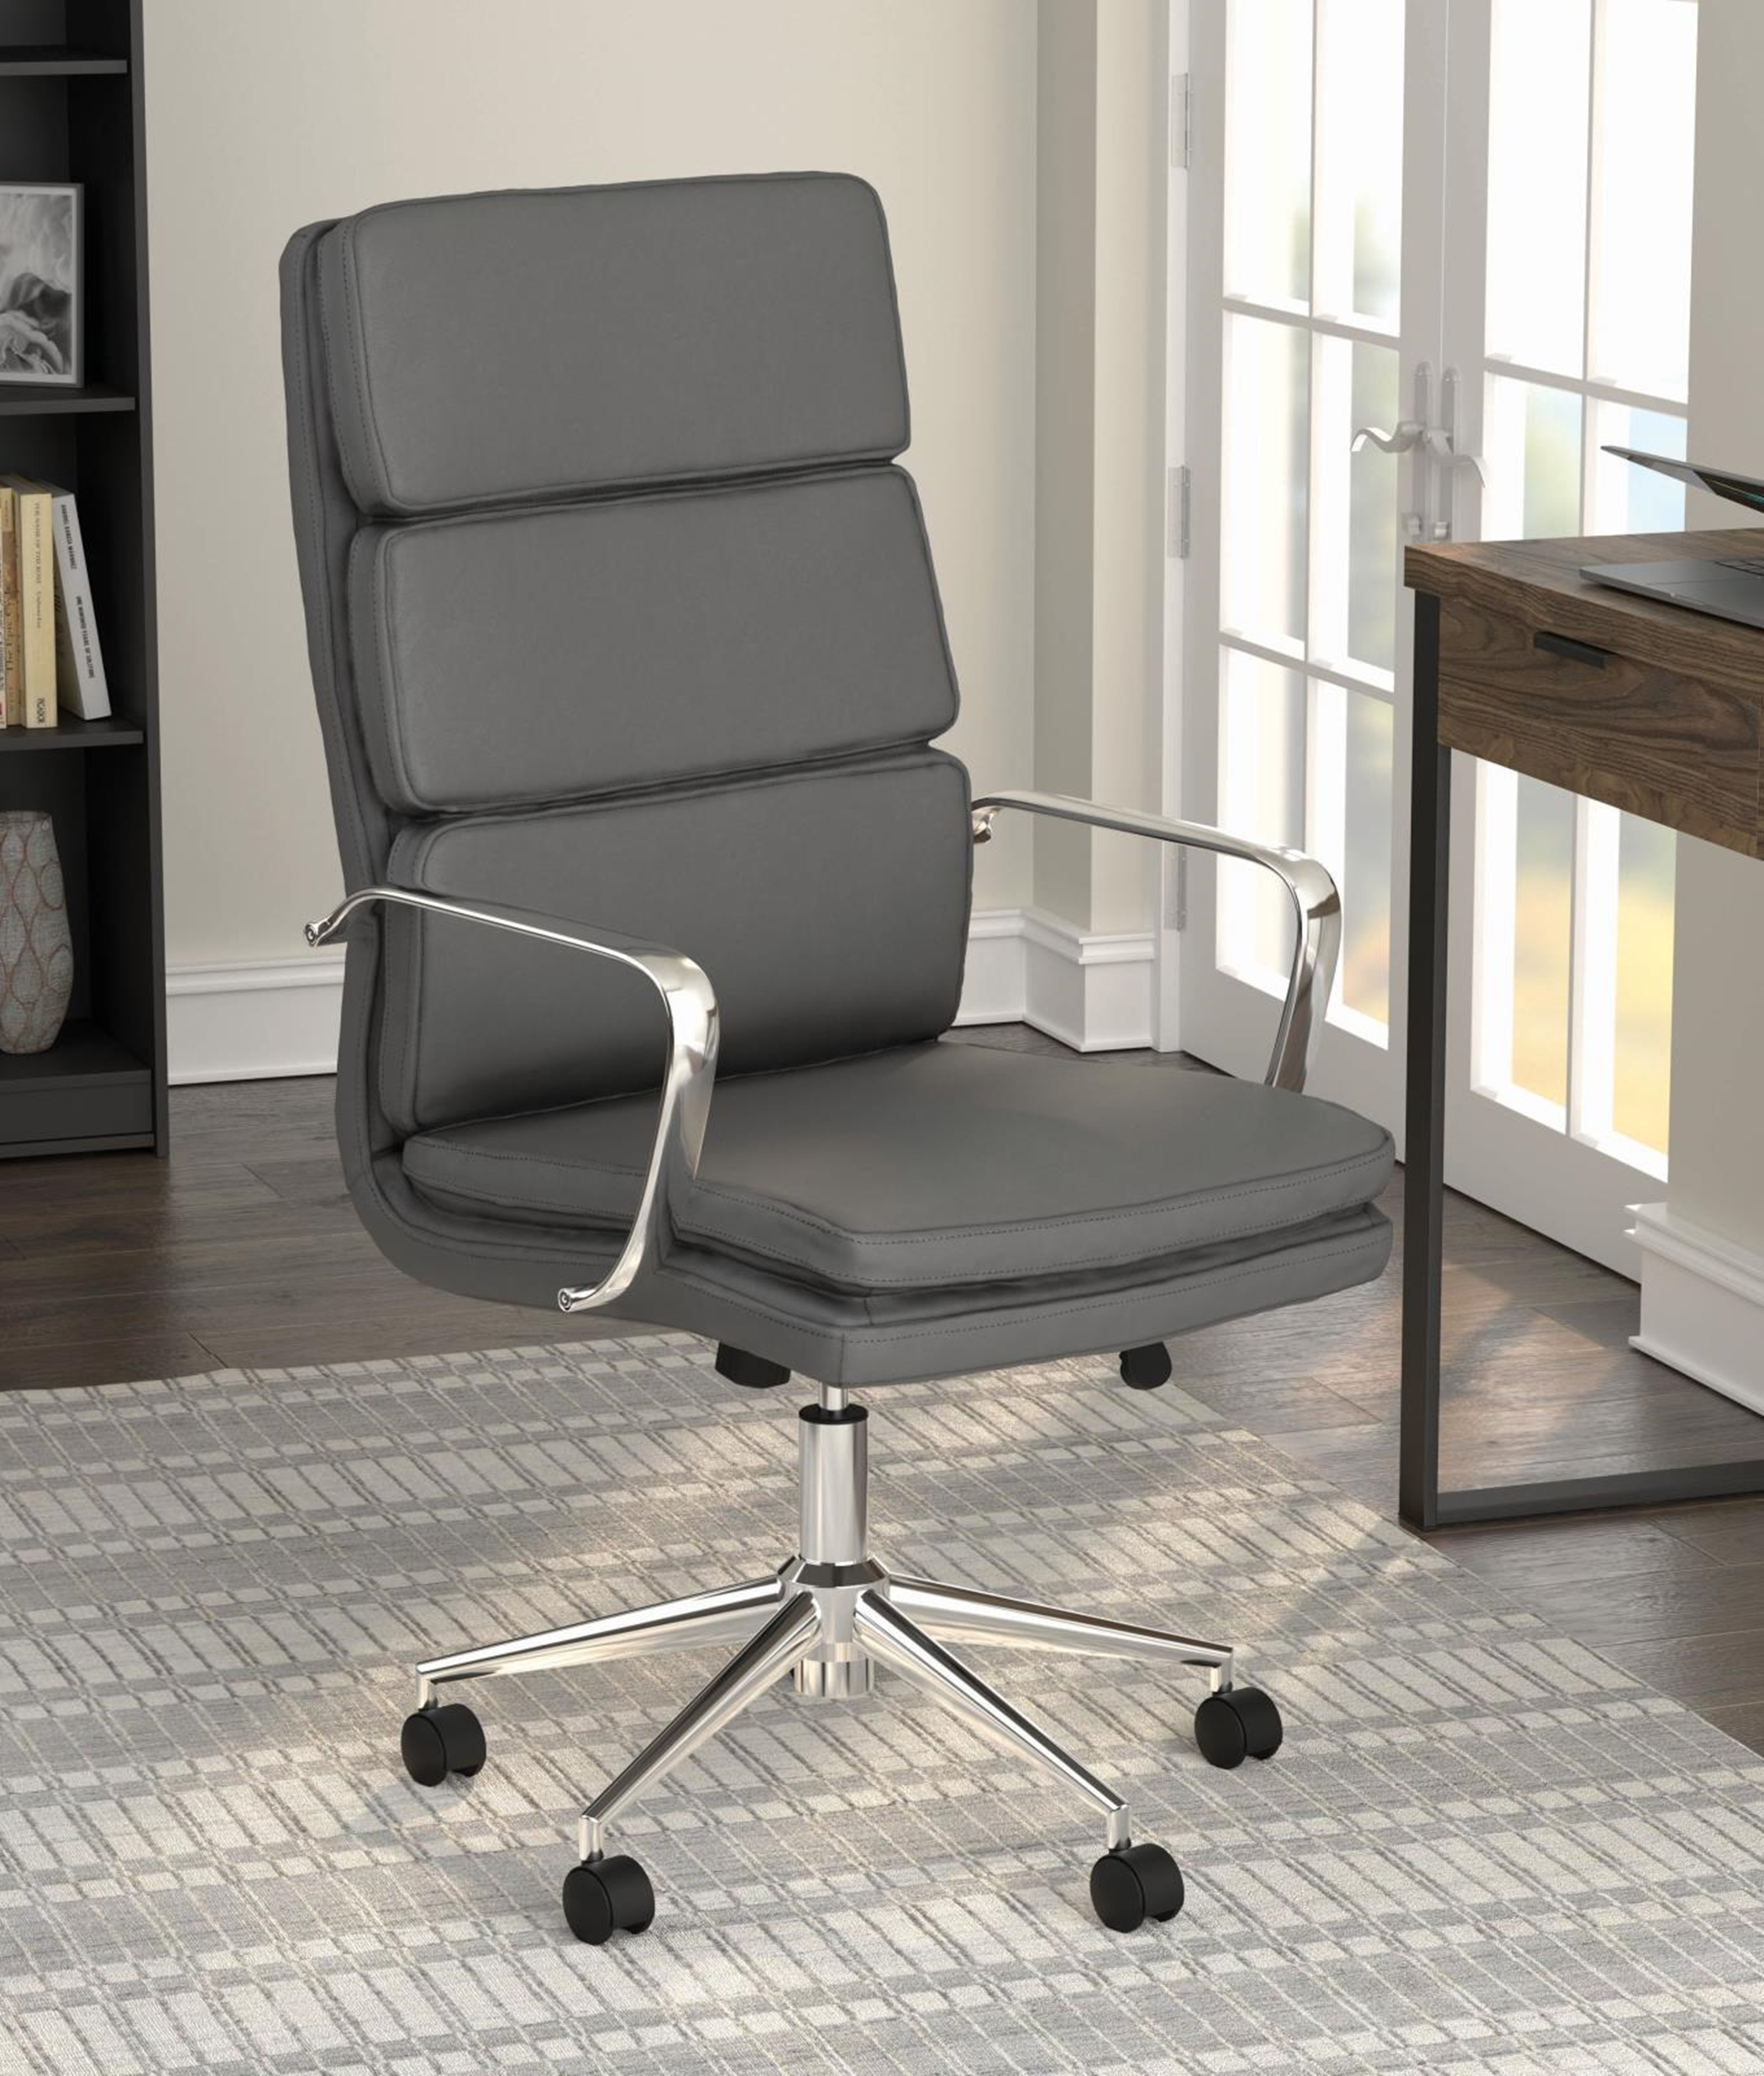 801745 - Office Chair